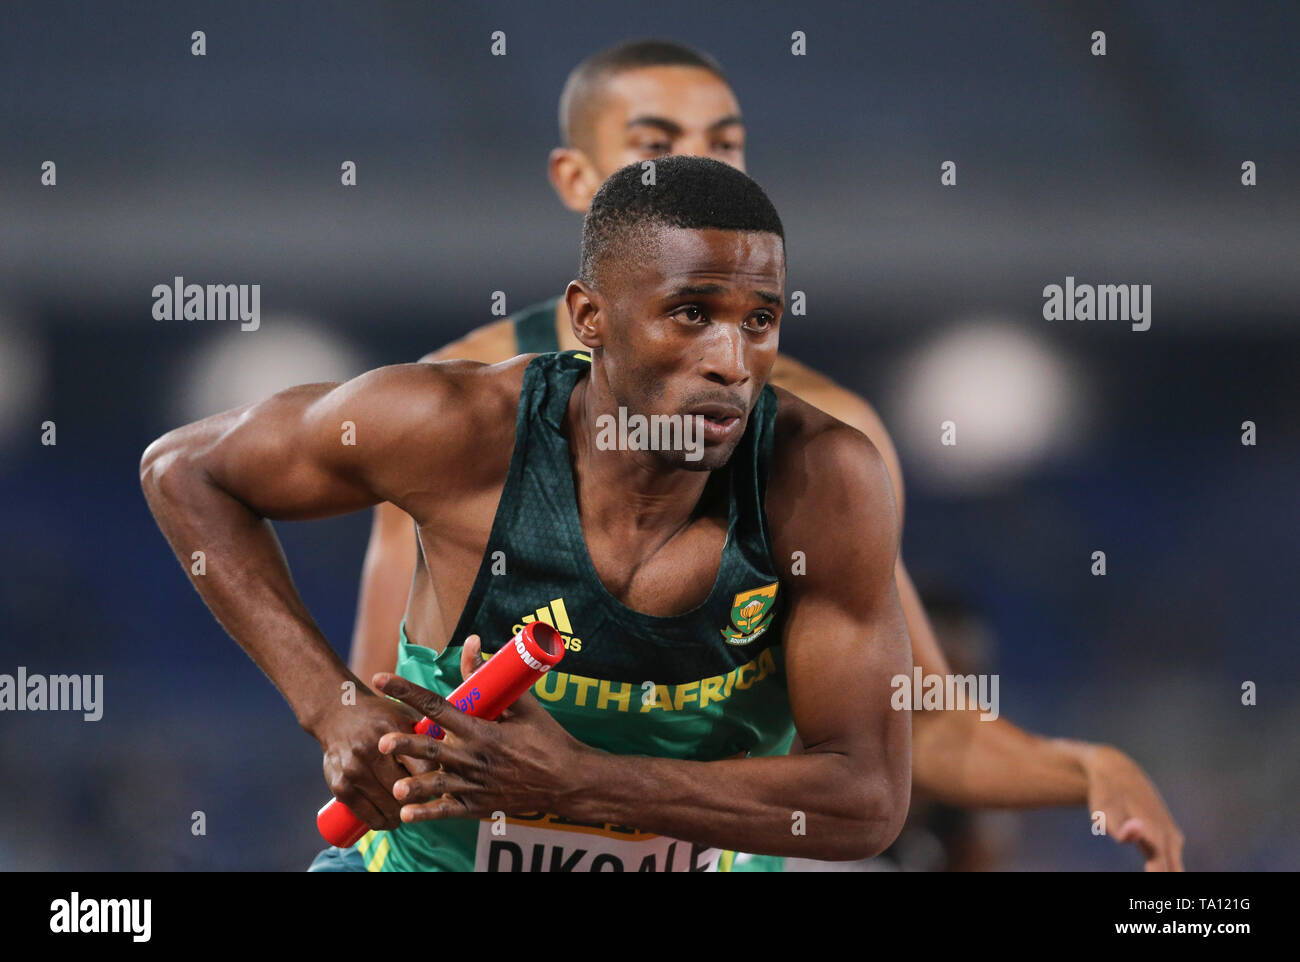 YOKOHAMA, JAPAN - MAY 11: Ranti Dikgale of South Africa during day 1 of the IAAF World Relays at Nissan Stadium on May 11, 2019 in Yokohama, Japan. (Photo by Roger Sedres/Gallo Images) - Stock Image